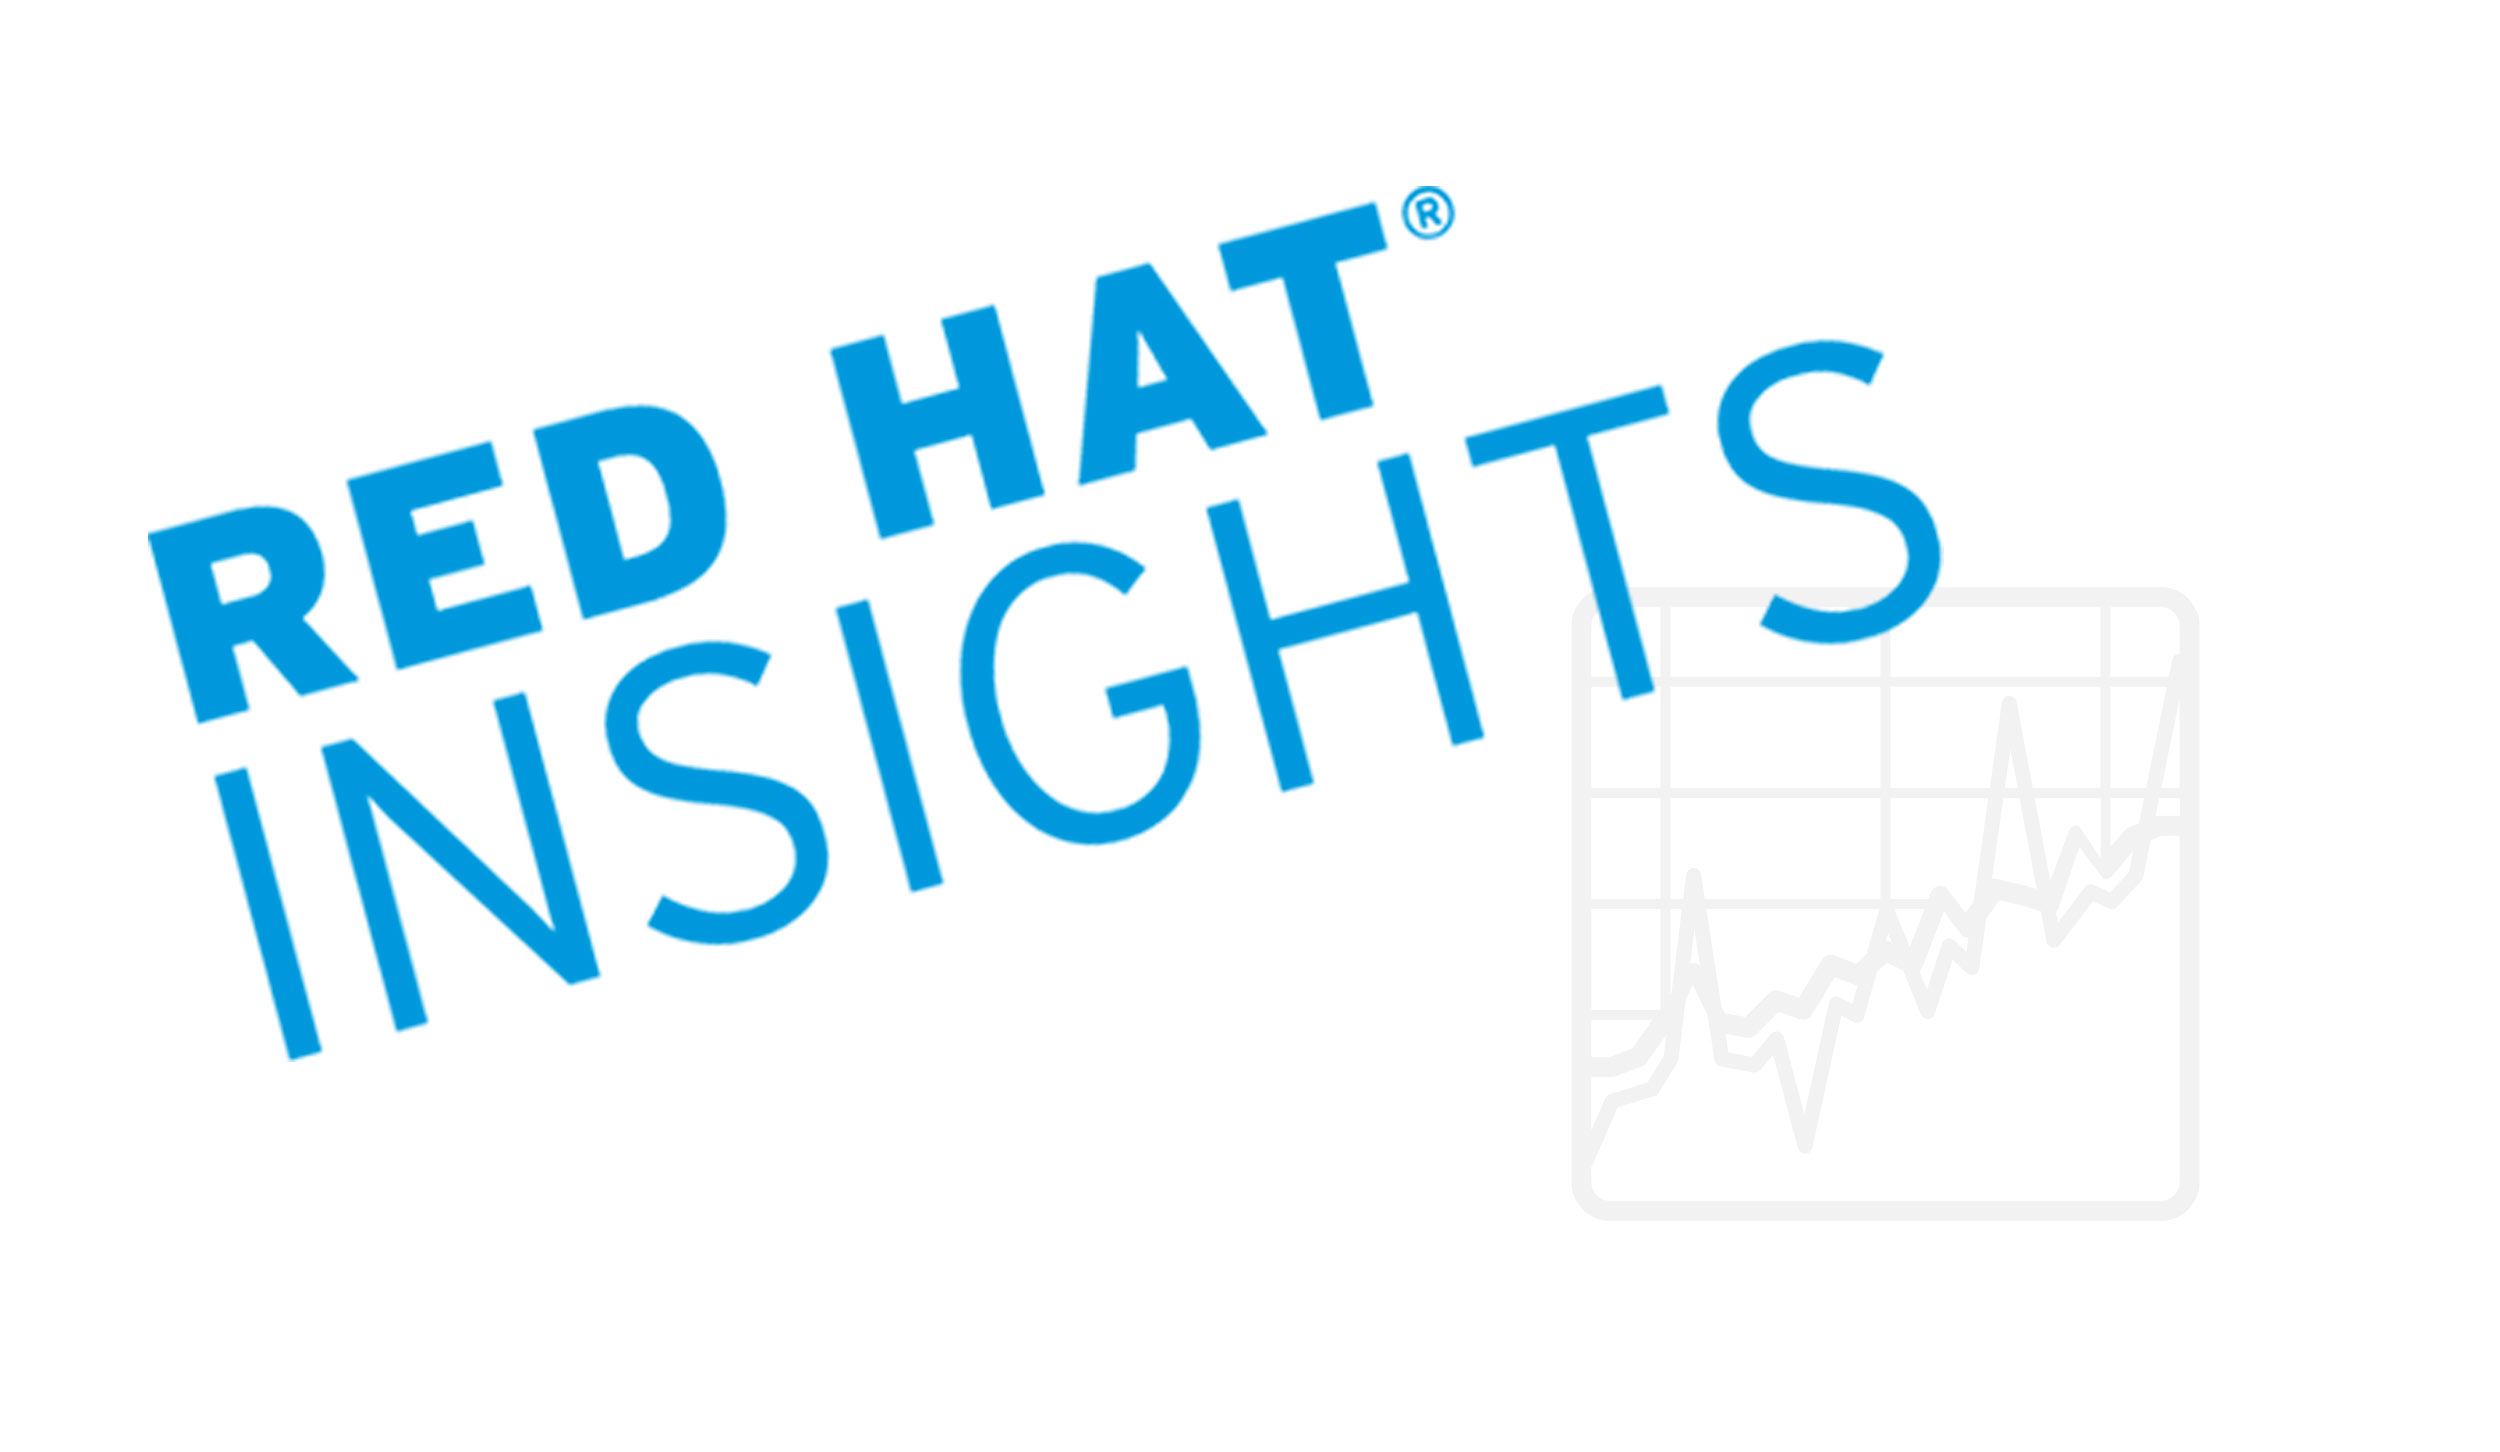 Insights 3.0 is now available!